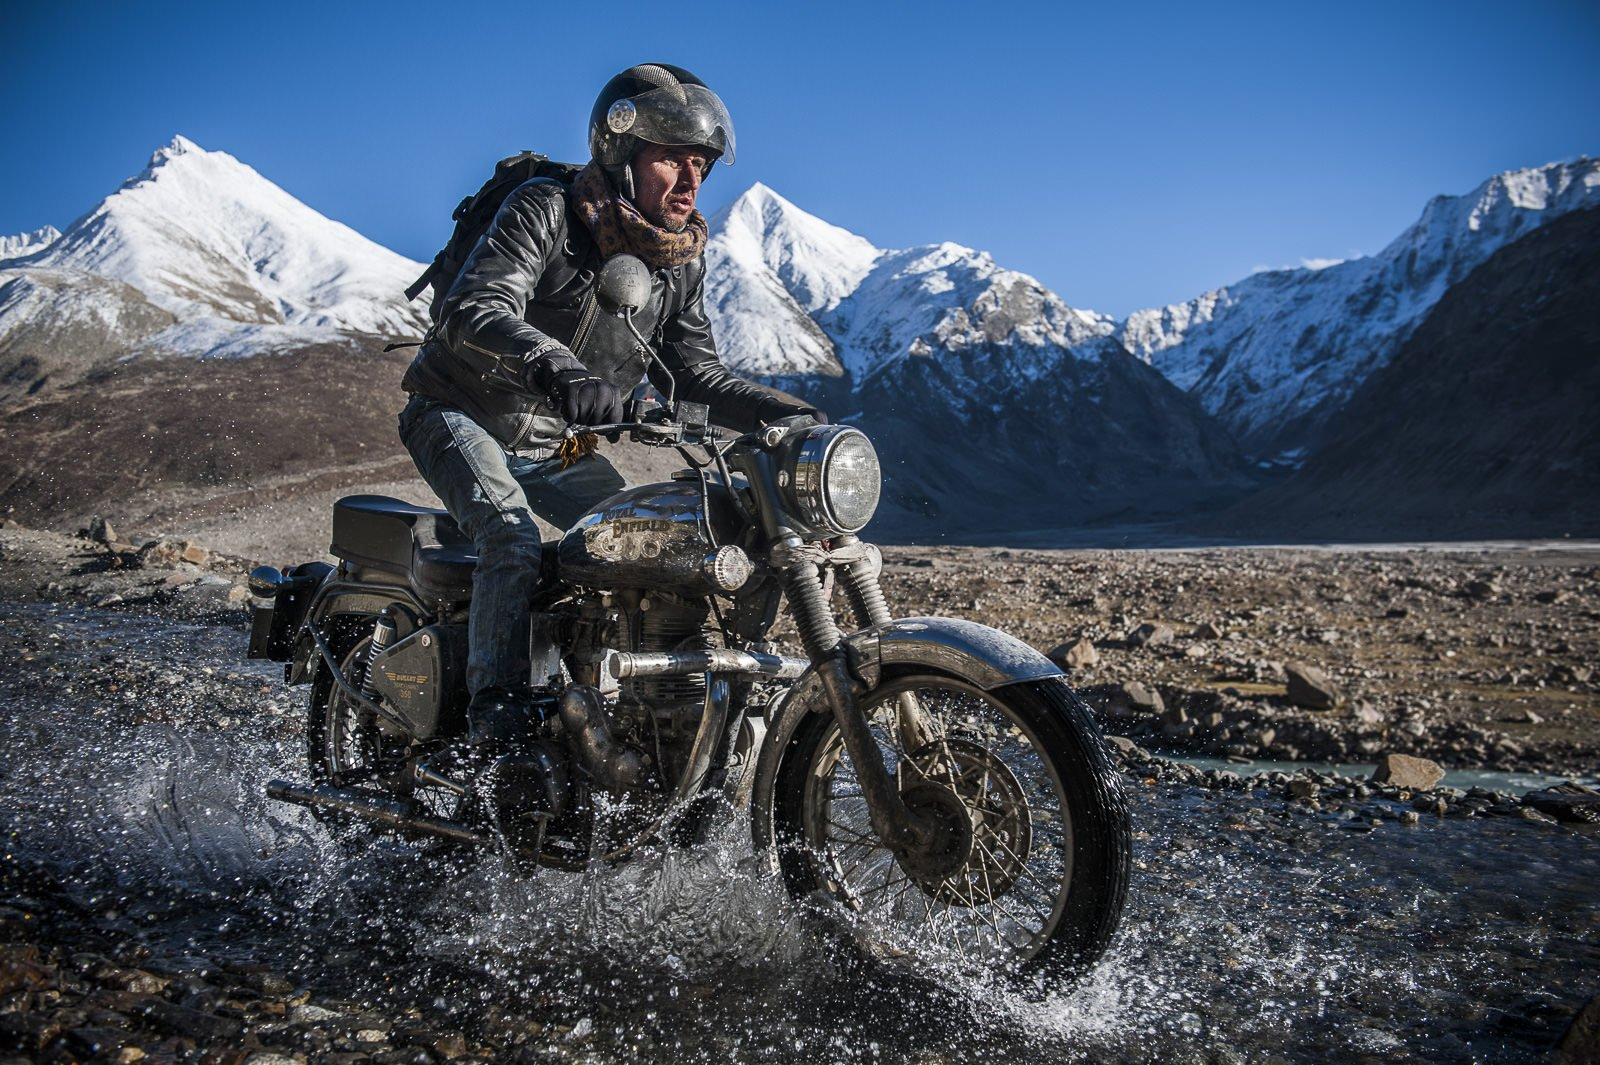 Royal Enfield Spiti Valley